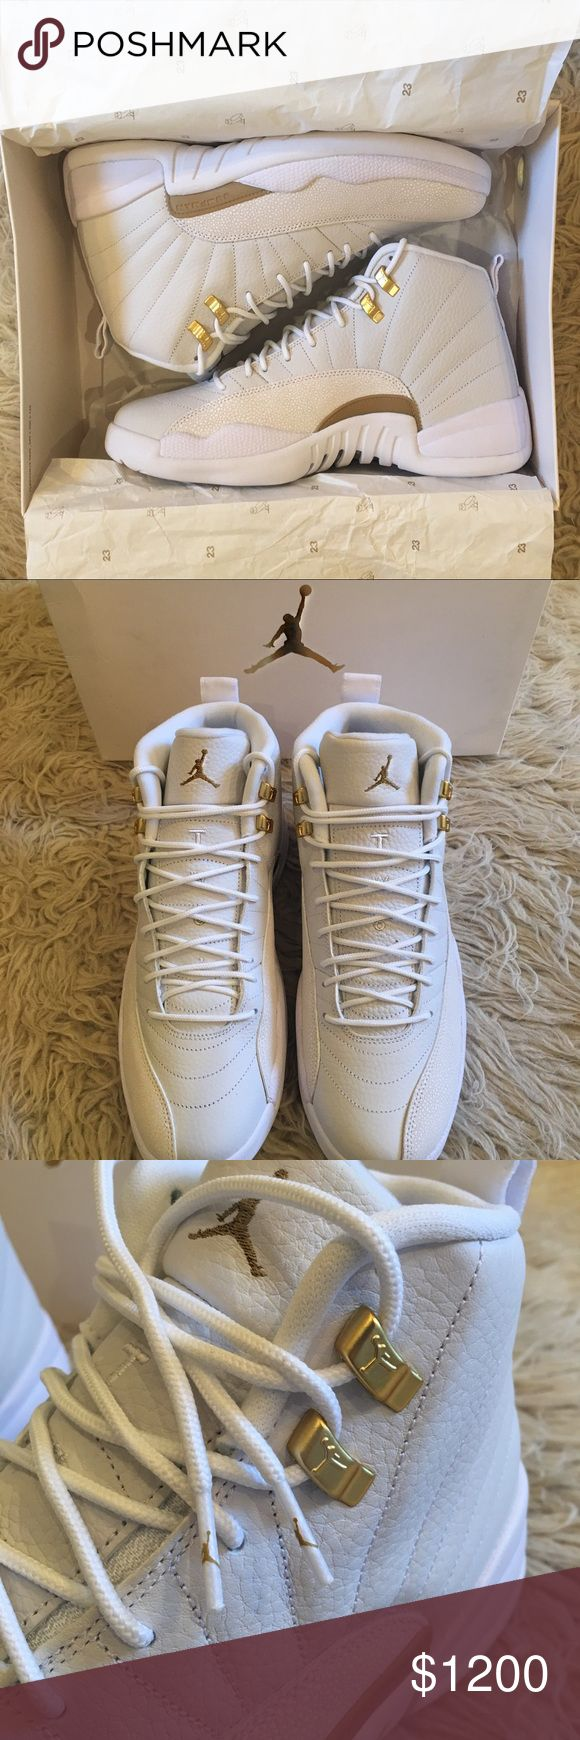 100% AUTHENTIC New Air Jordan 12 Retro OVO Sz 10 100% Authentic. Verified authenticity by Flight Club. Brand new with original box and receipt. Limited Edition Nike Air Jordan 12 Retro OVO. I purchased these Jordans as gift. I purchased directly from the Flight Club website, unfortunately they were the wrong size, and I was unable to return them to the company. These have never been worn, or used. Please feel free to comment with any questions or for any additional information, I'm happy to…